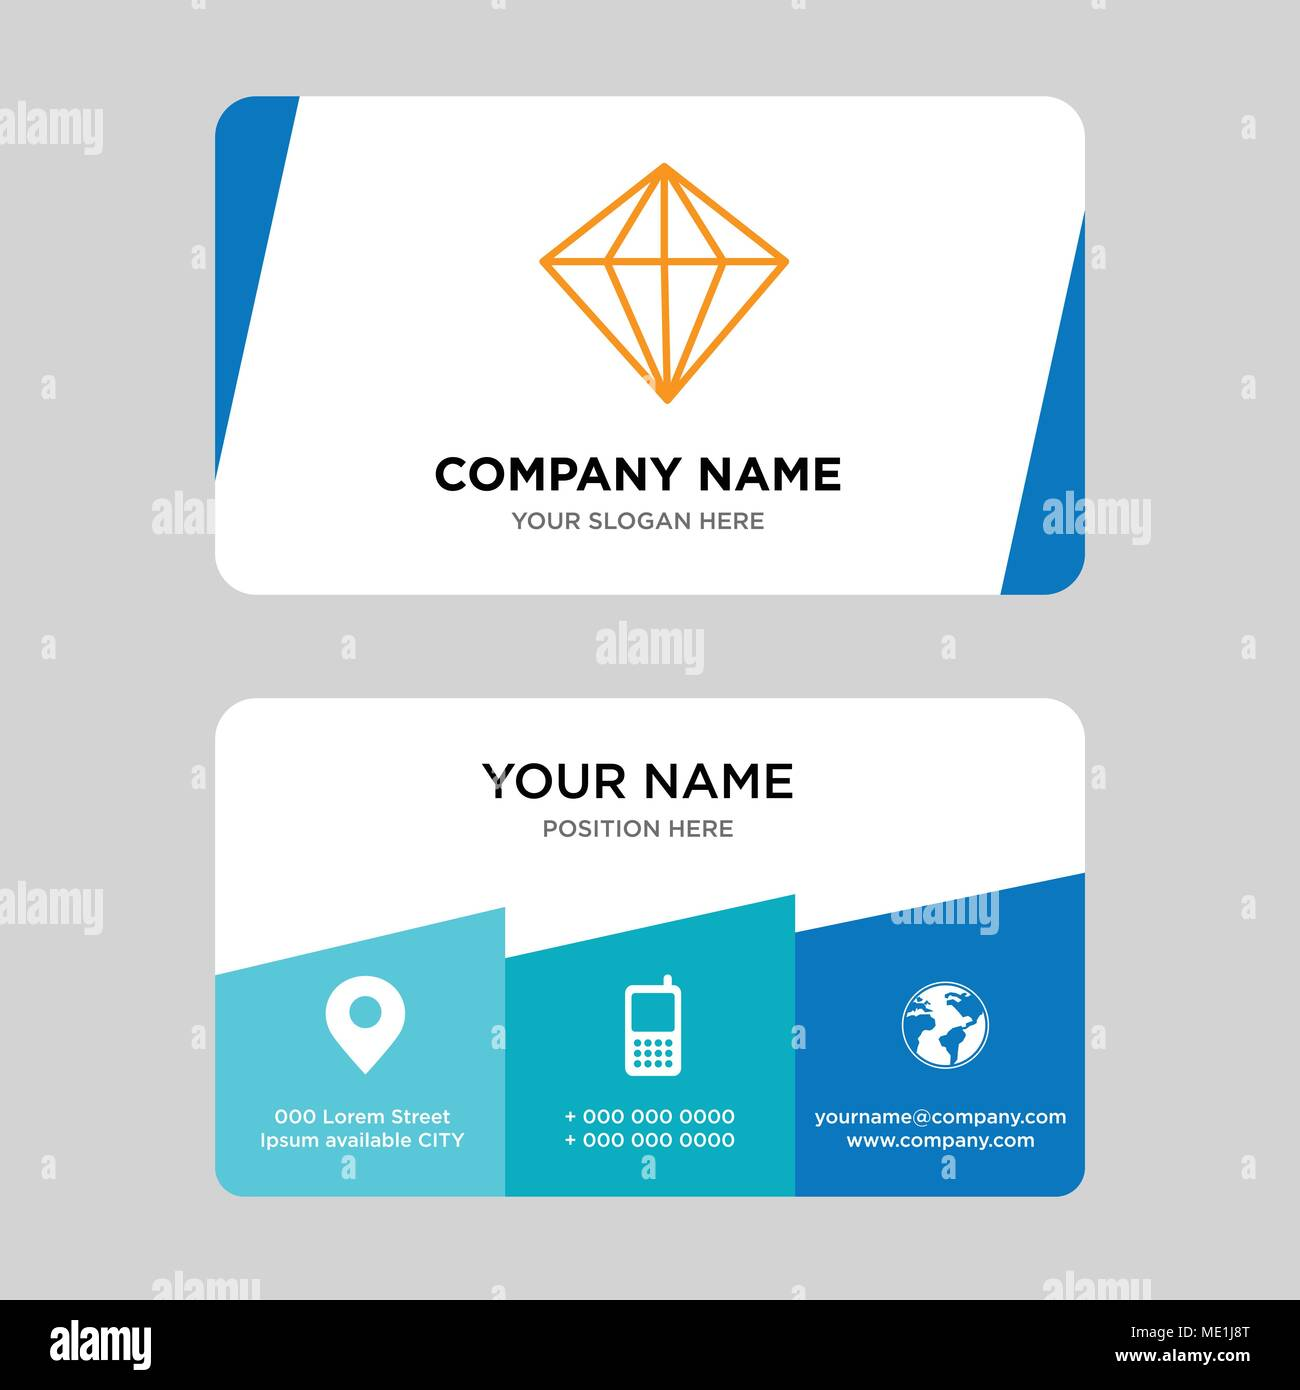 Diamond business card design template visiting for your company diamond business card design template visiting for your company modern creative and clean identity card vector illustration colourmoves Gallery